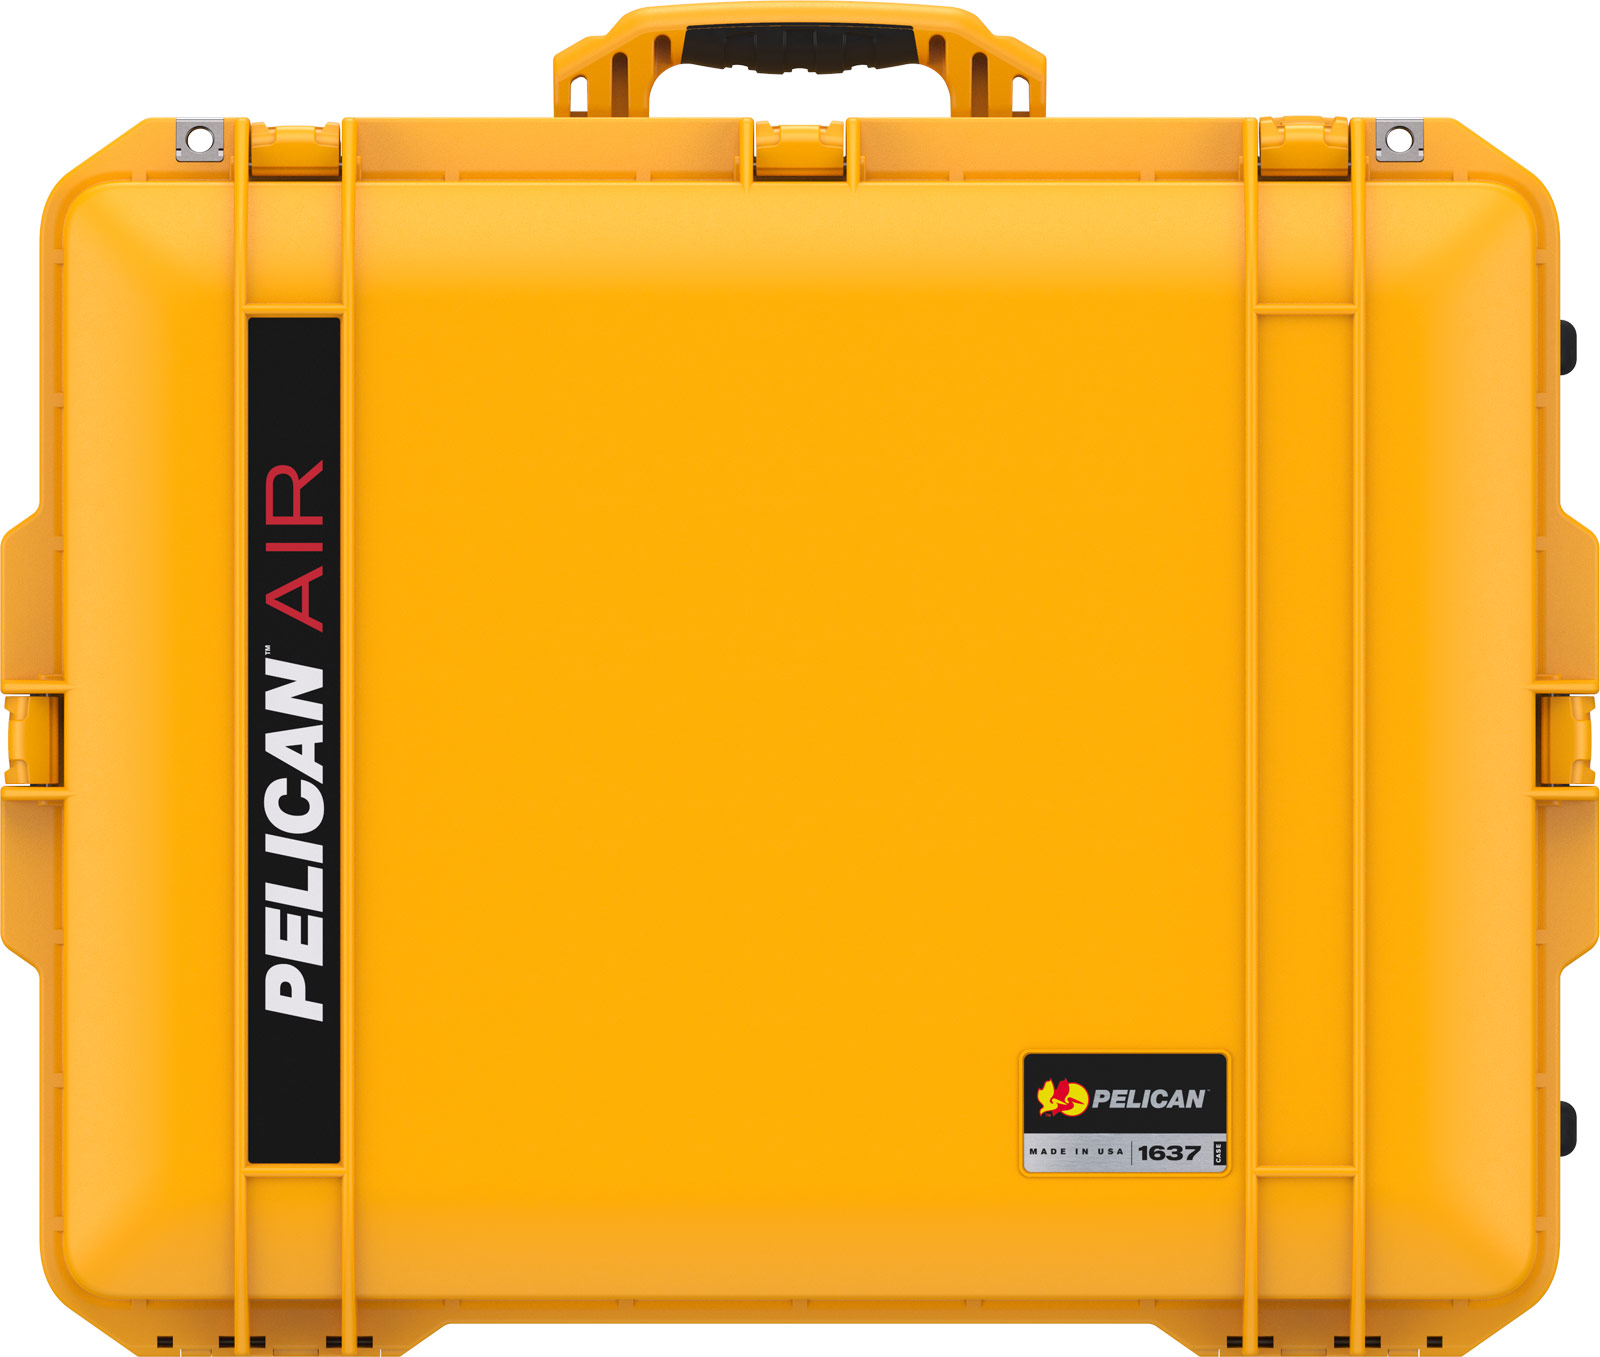 pelican 1637 yellow air watertight audio case